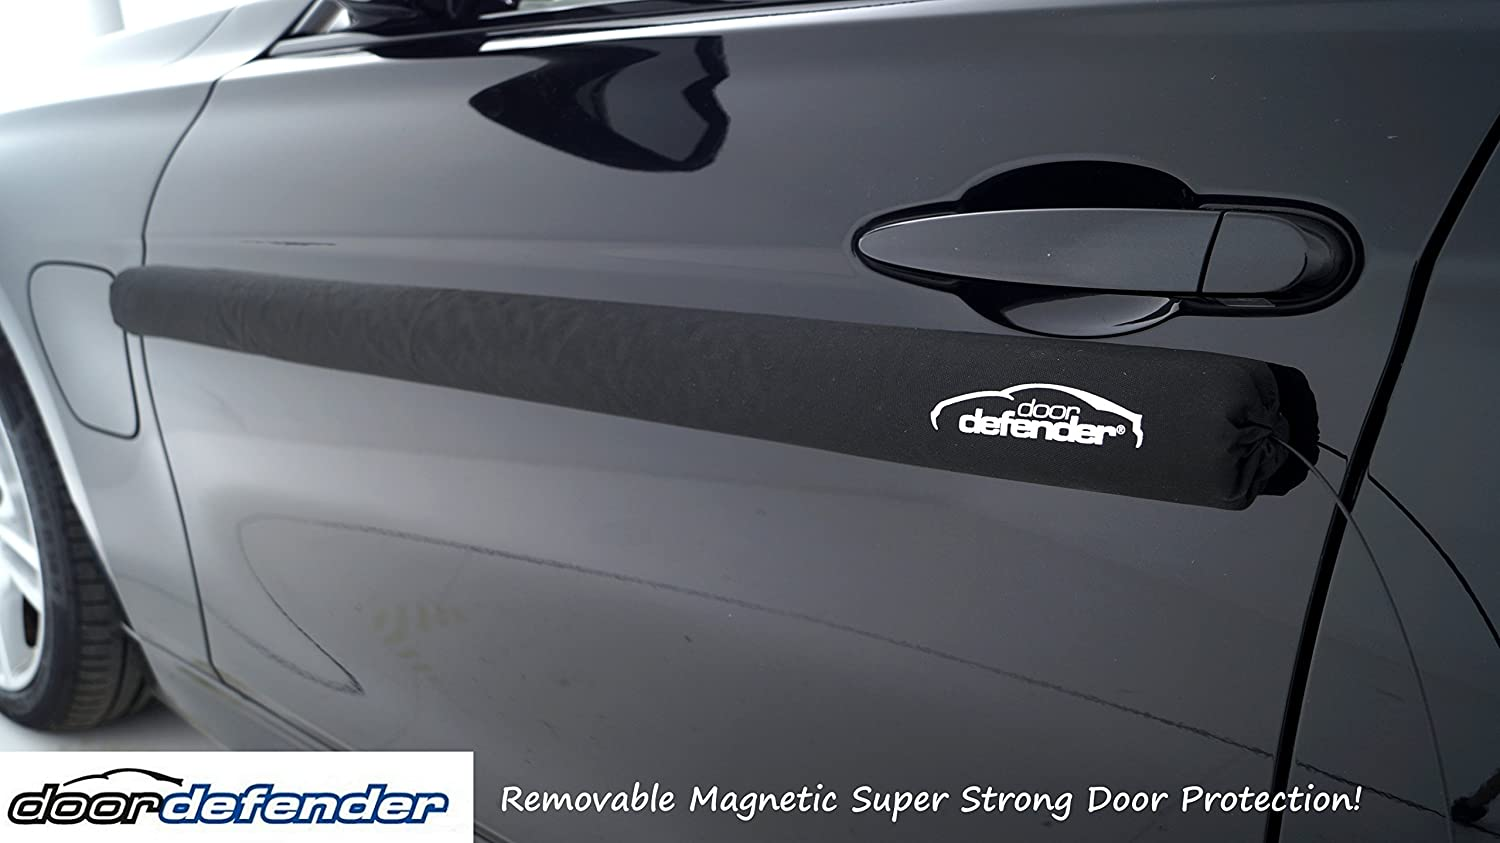 Doordefender MAXI - magnetic removable car door protection van dent protector vehicle ding protectors car guard car edge barrier cars trim protect ... : door protection - pezcame.com